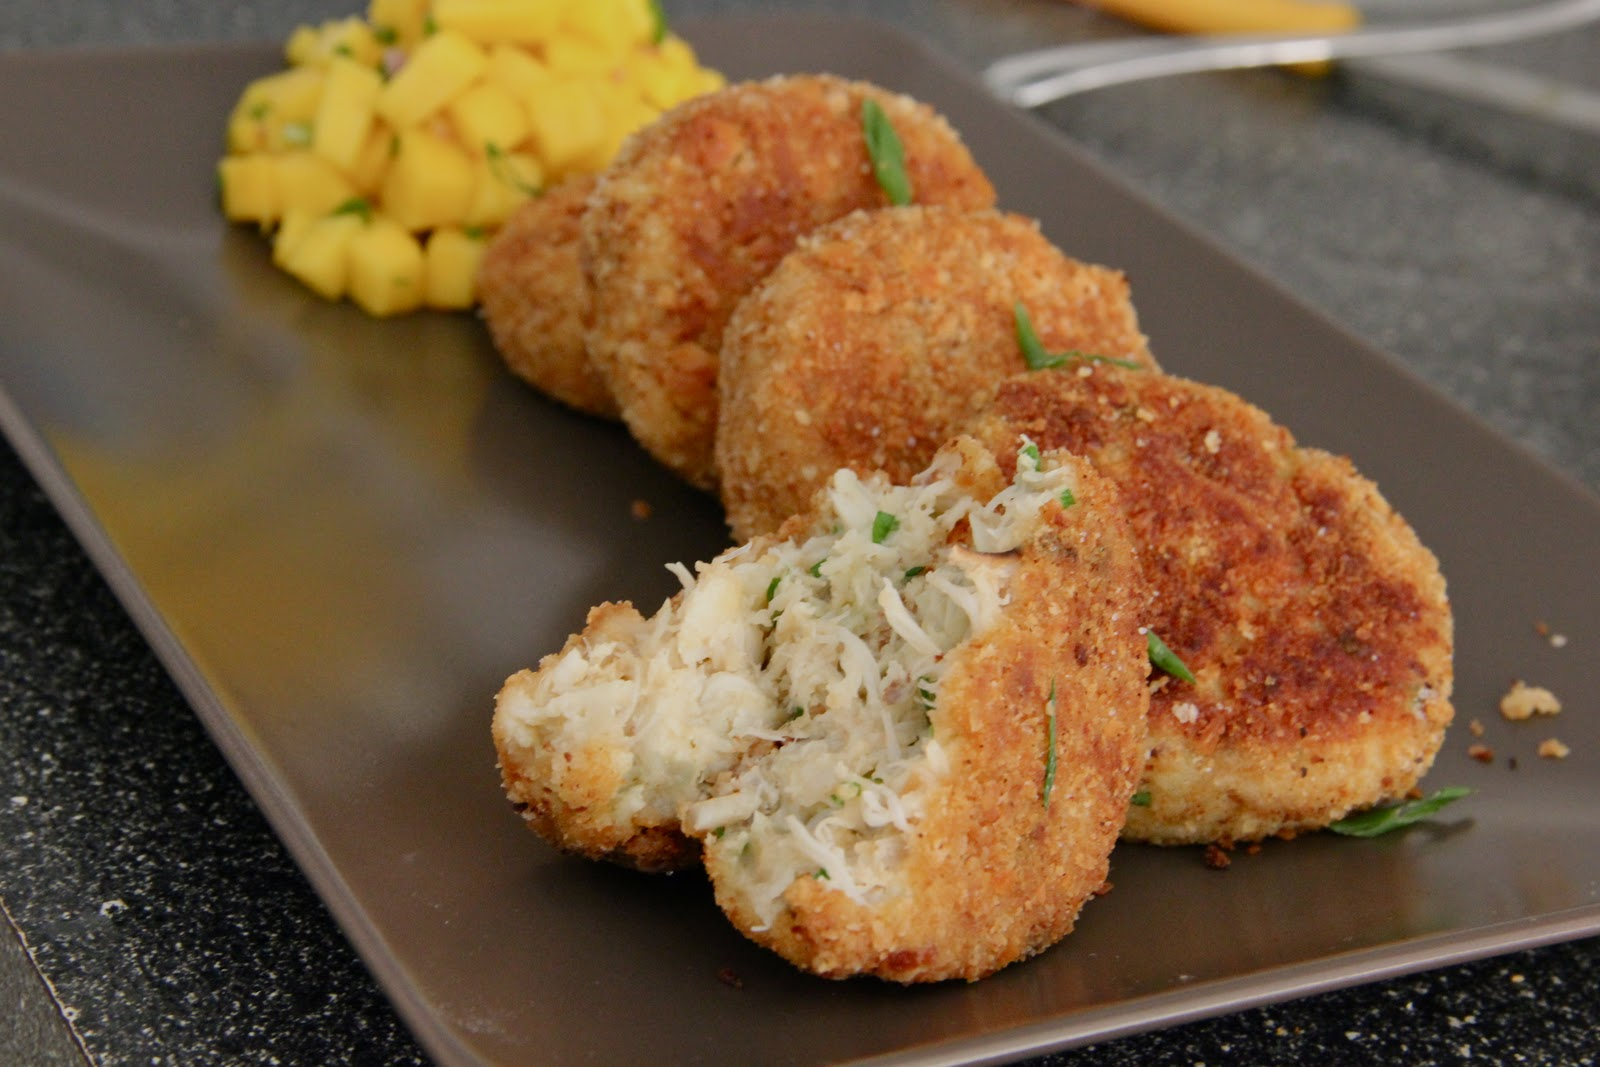 Good Sides To Go With Crab Cakes